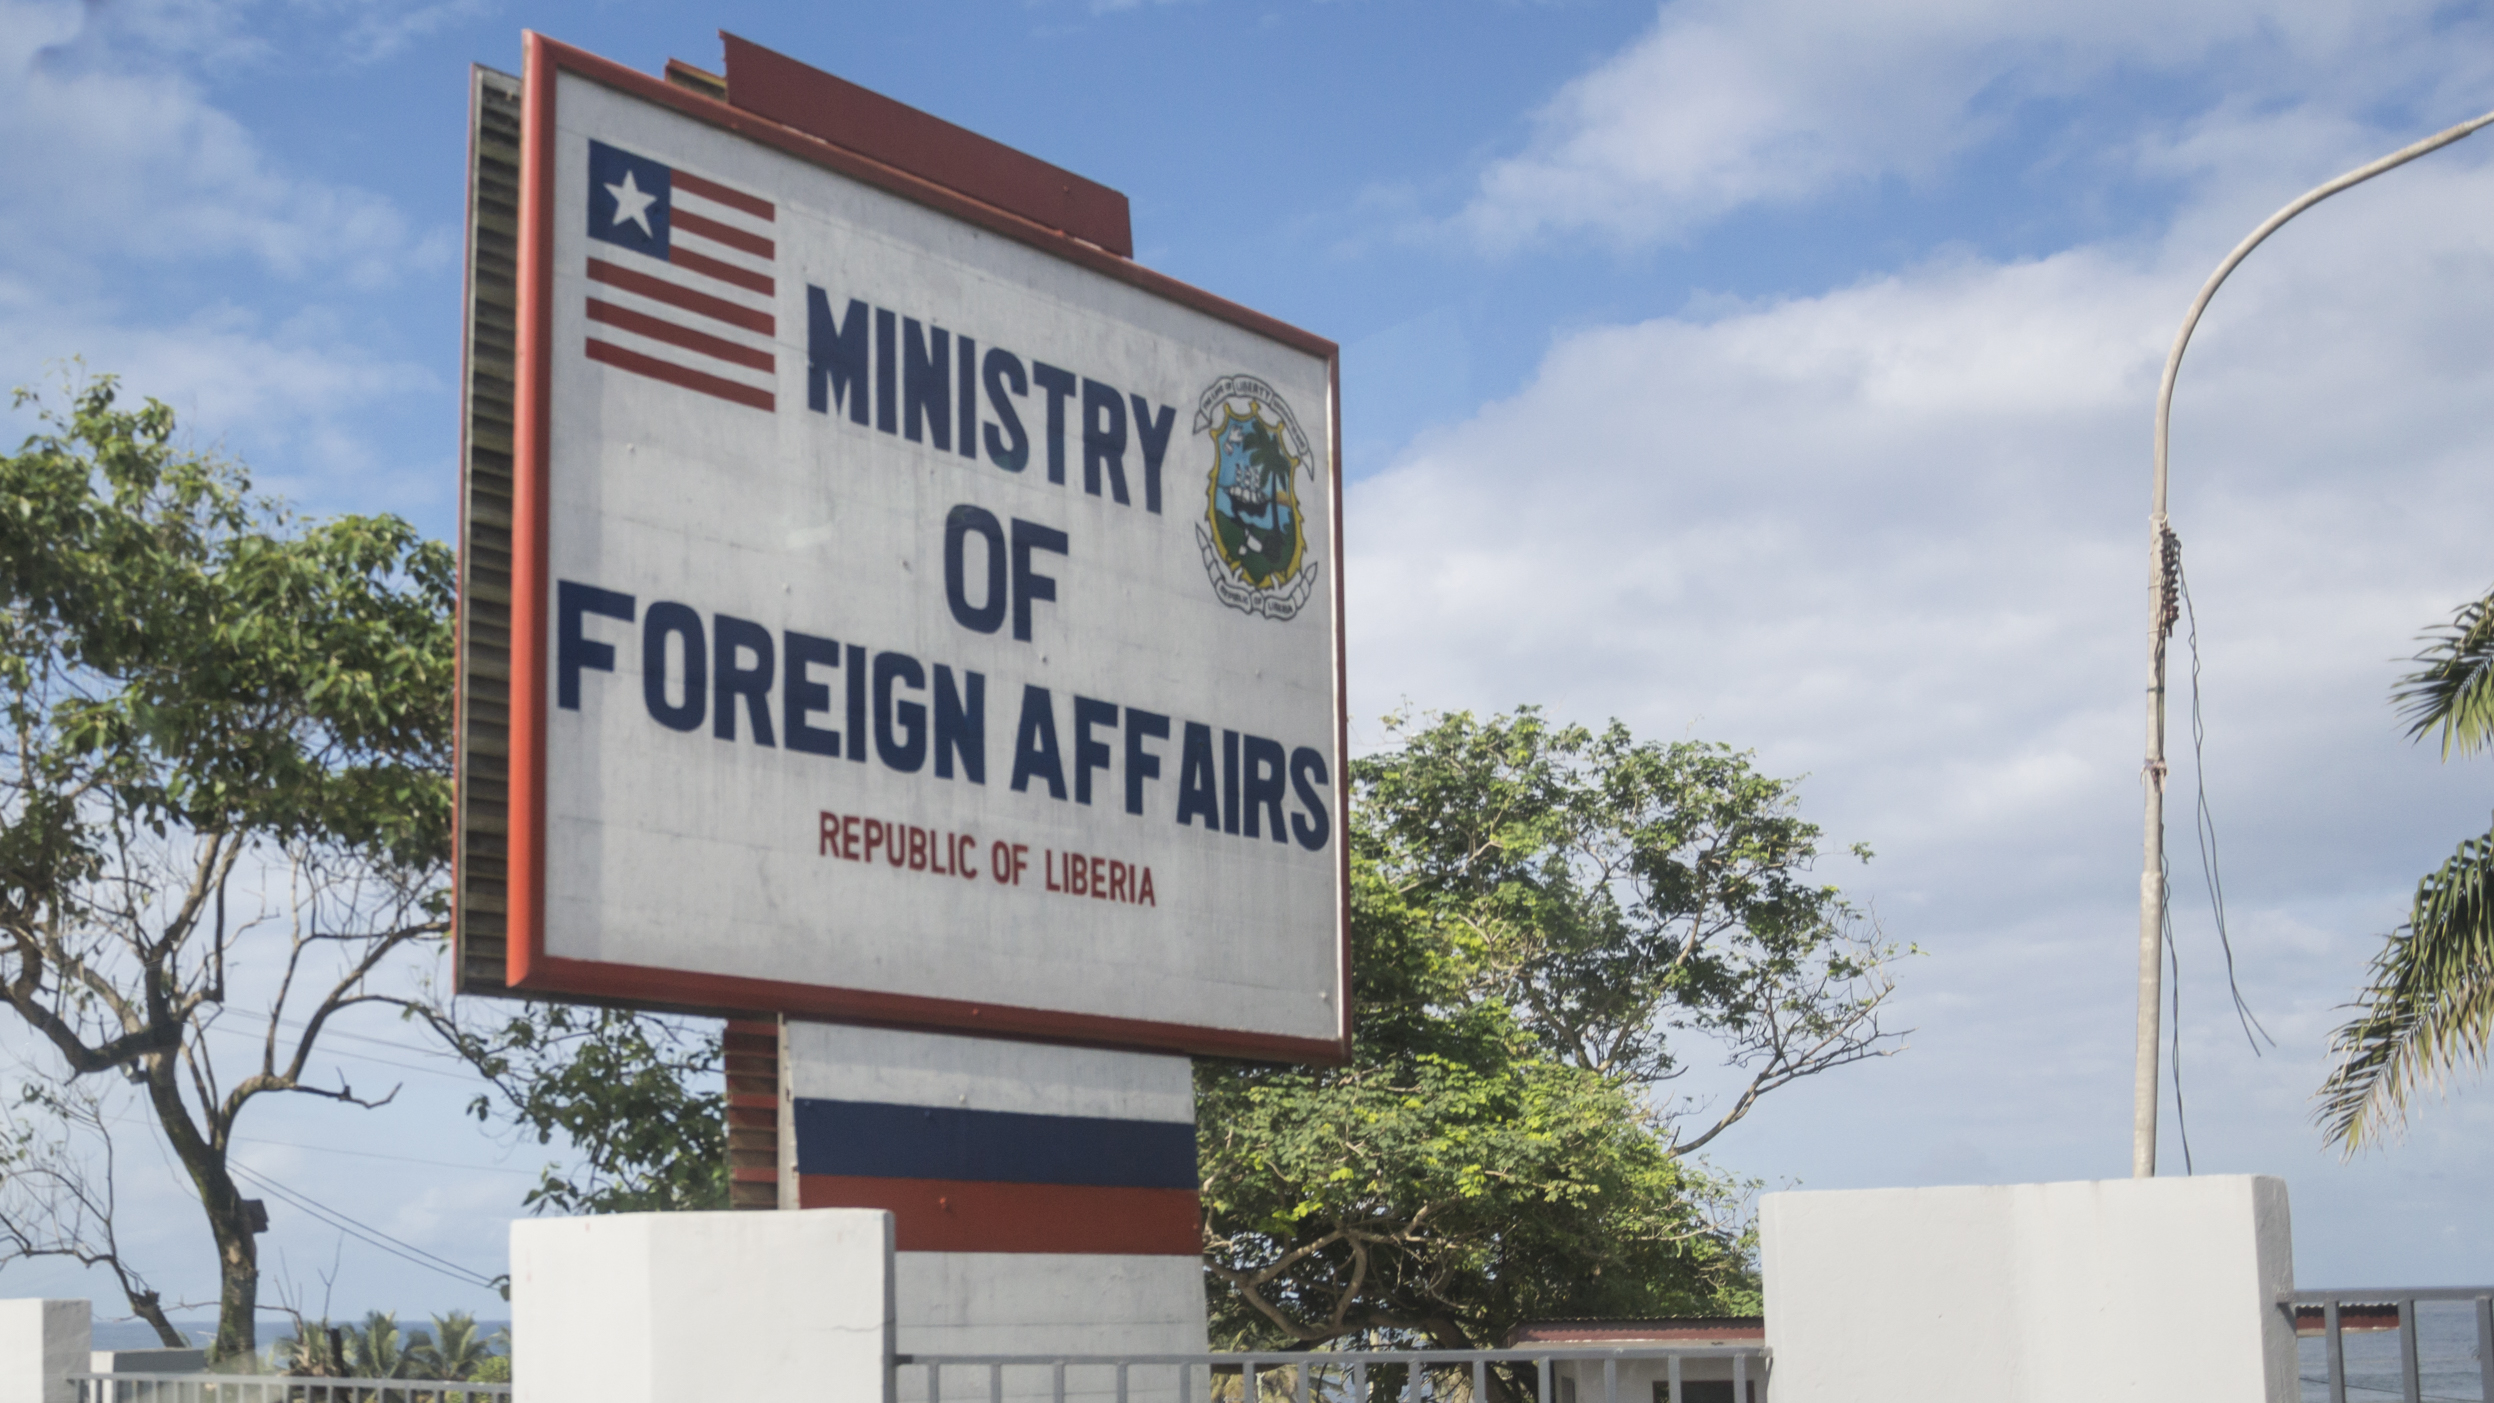 Outside the ministry of Foreign Affairs, Monrovia, Liberia